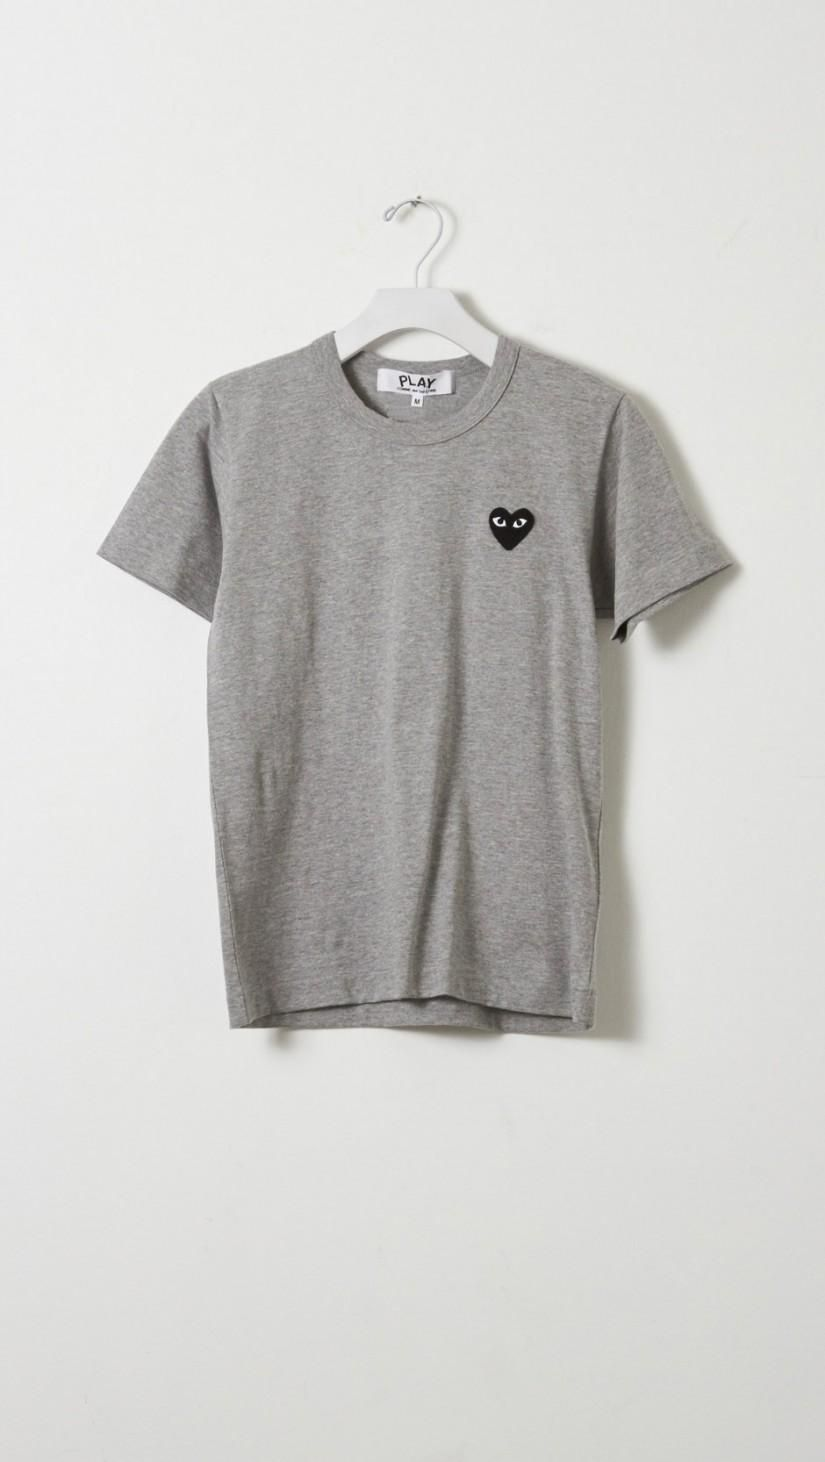 00d7f9c7a PLAY Comme Des Garcons Emblem Tee in Grey w/ Black | The Dreslyn ...